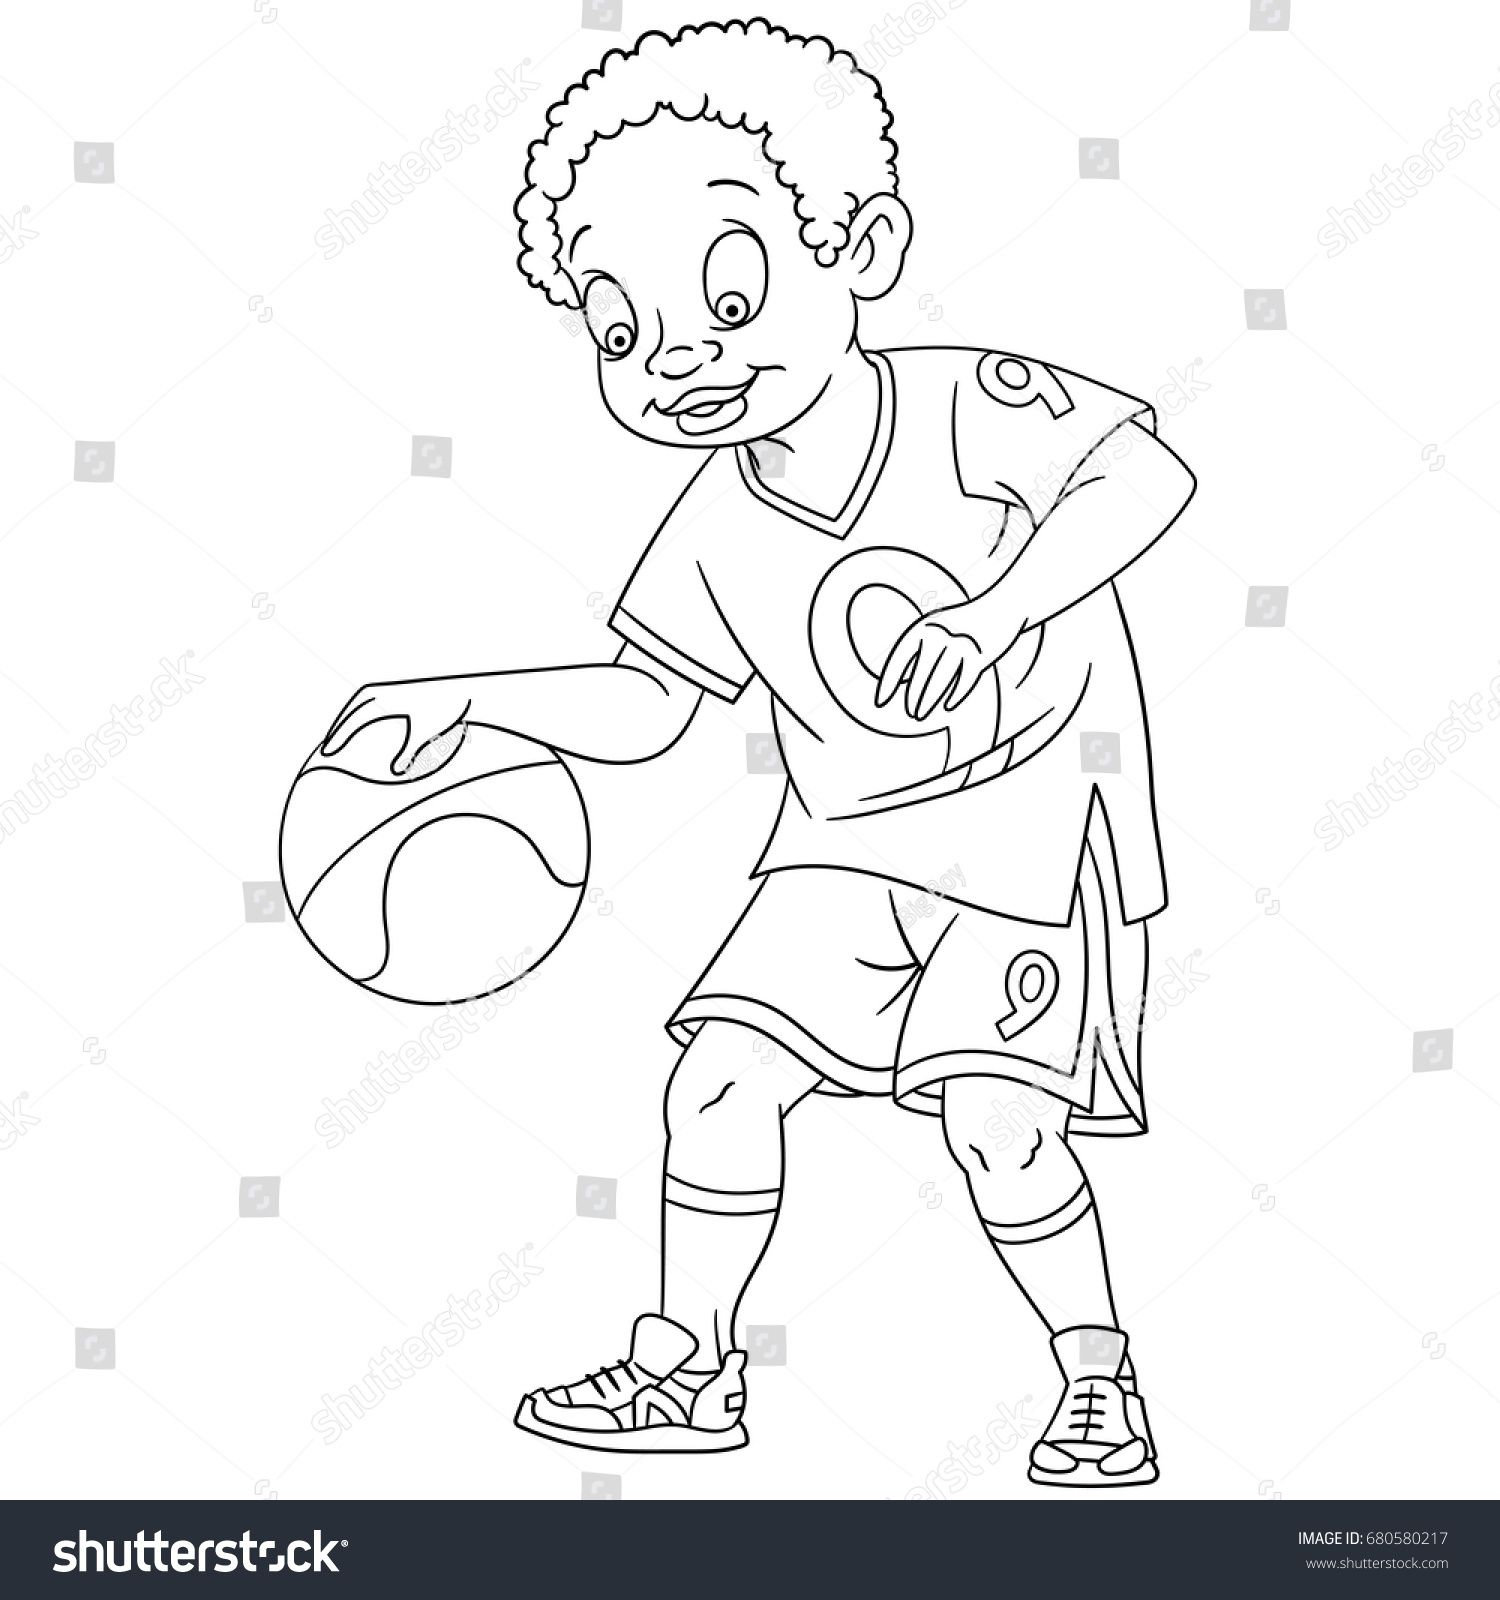 coloring page of boy playing basketball colouring book for kids and children cartoon vector - Basketball Coloring Pages Boys